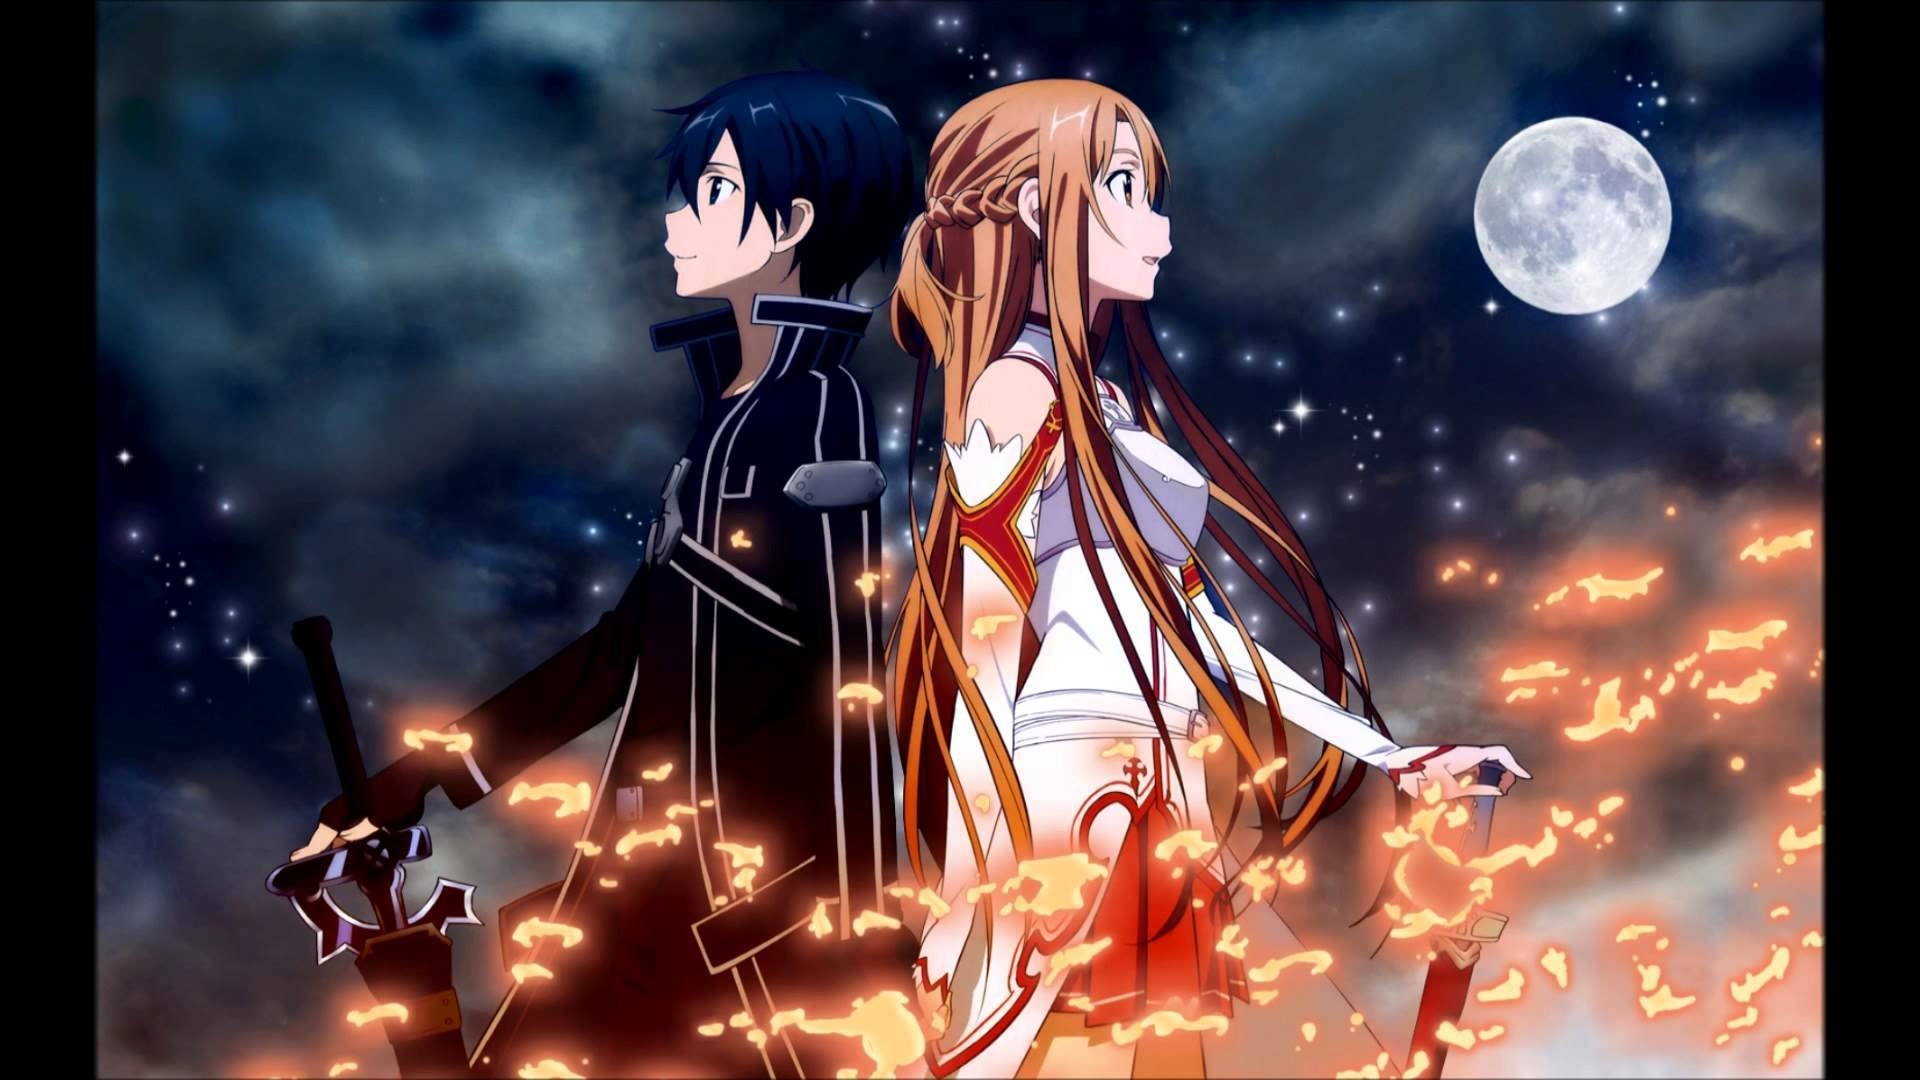 Kirito and Asuna in promotional imagery